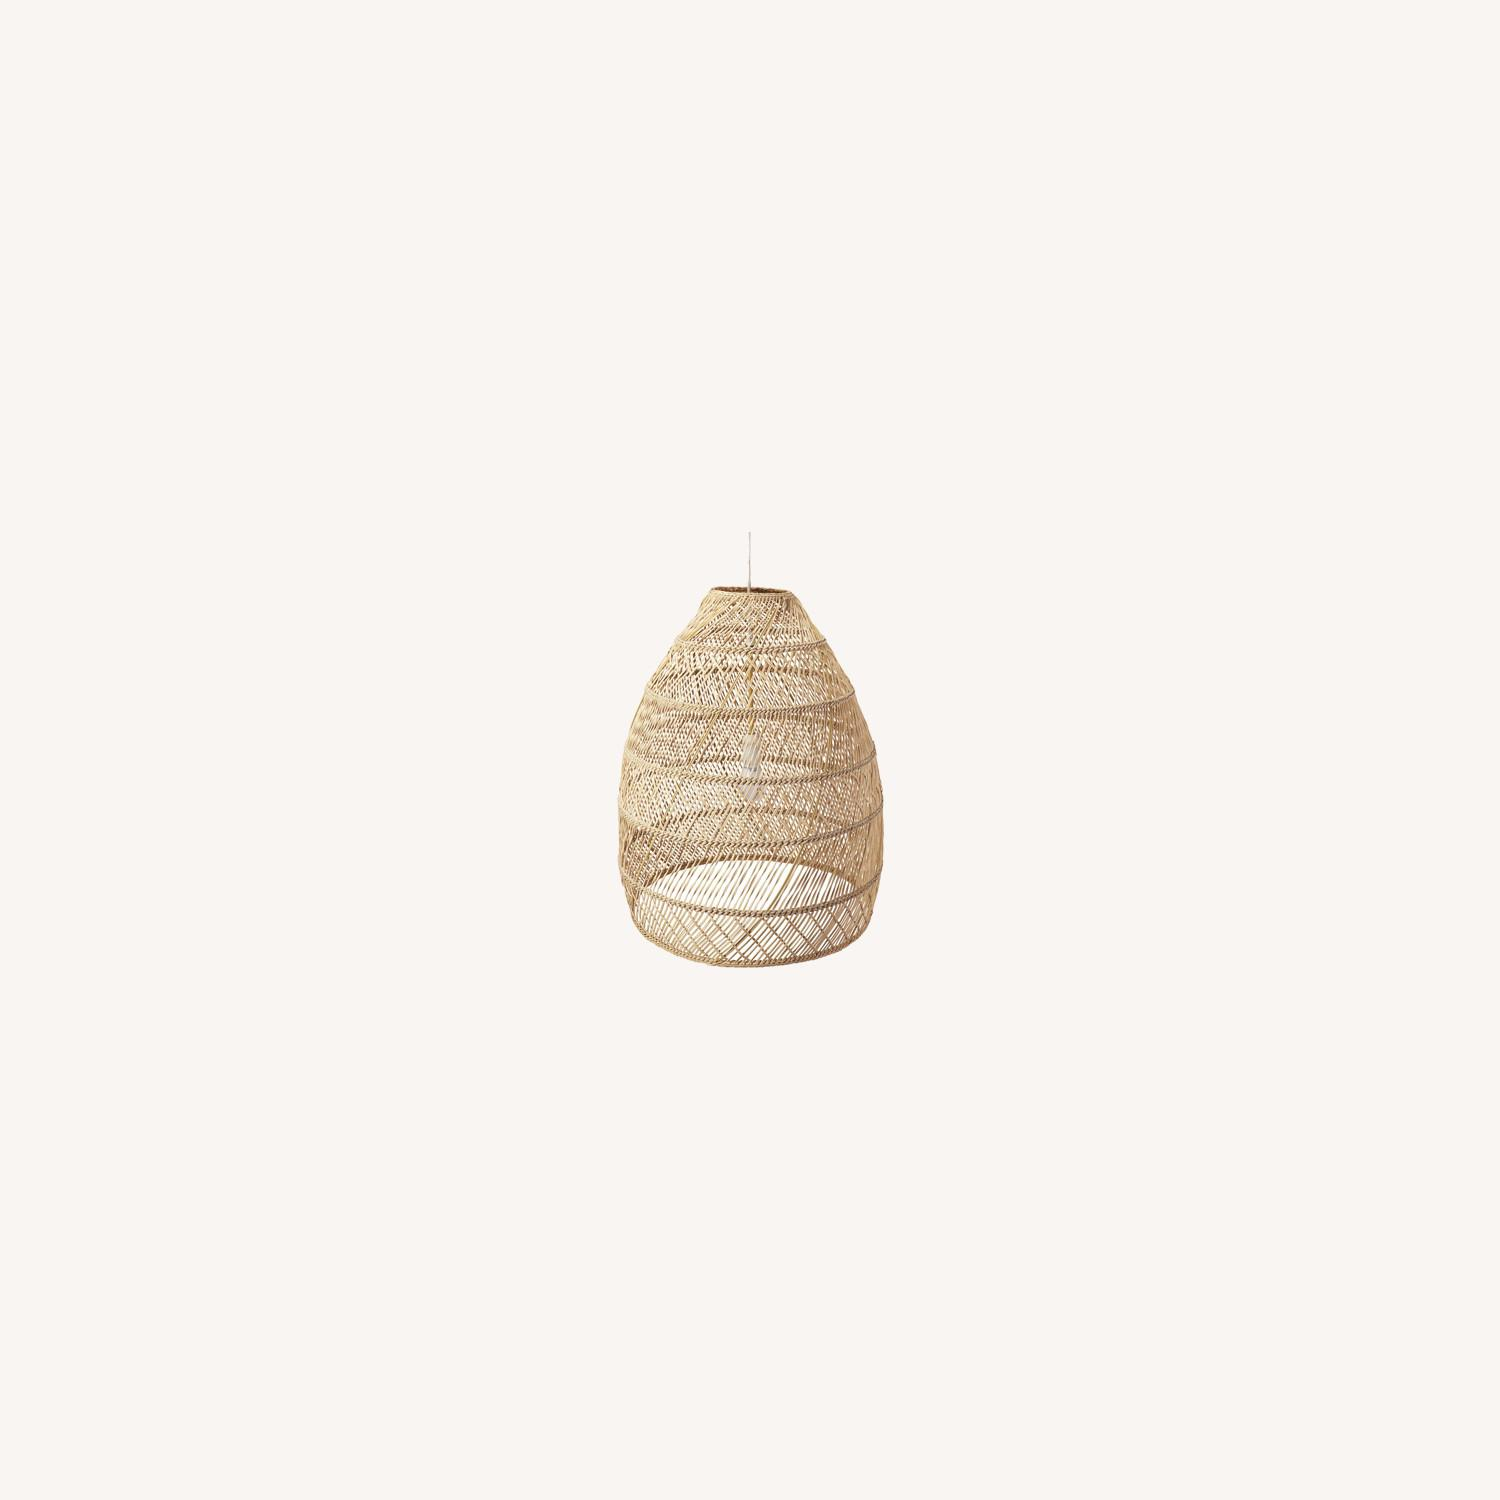 Serena and Lily Rattan Ceiling Light Pendants (2) - image-0